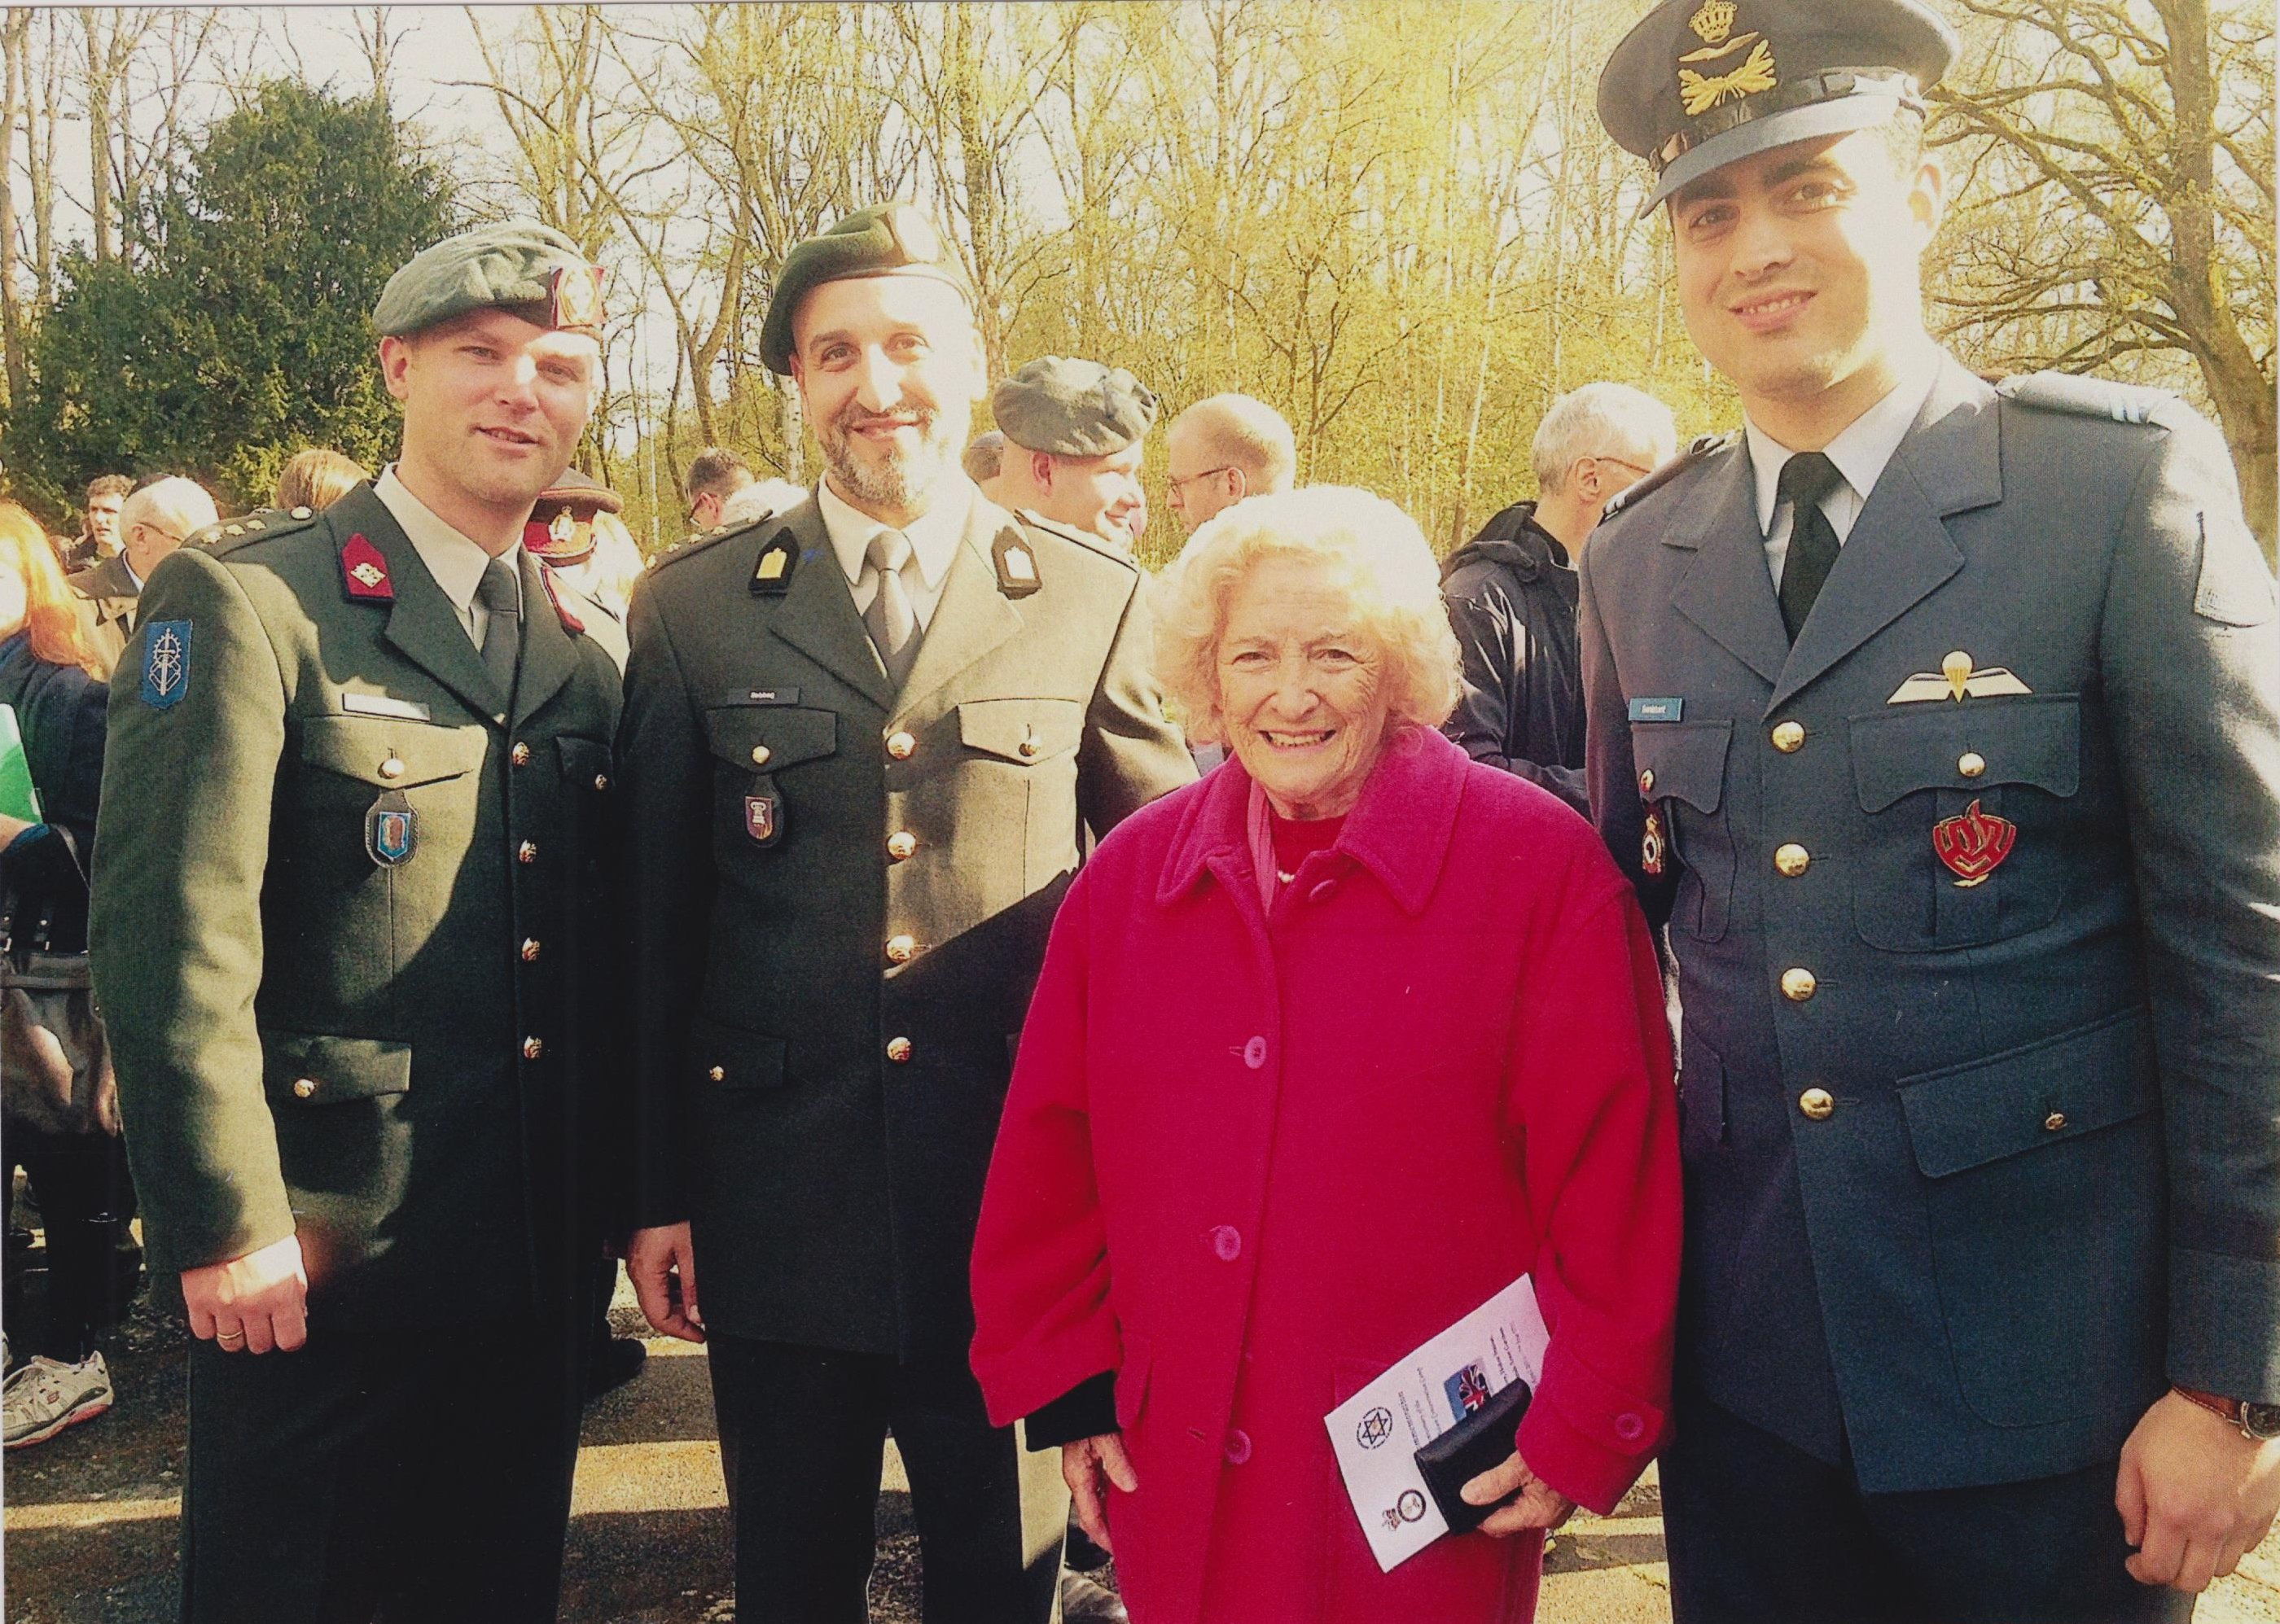 Hetty and 3 Army Personnel 001